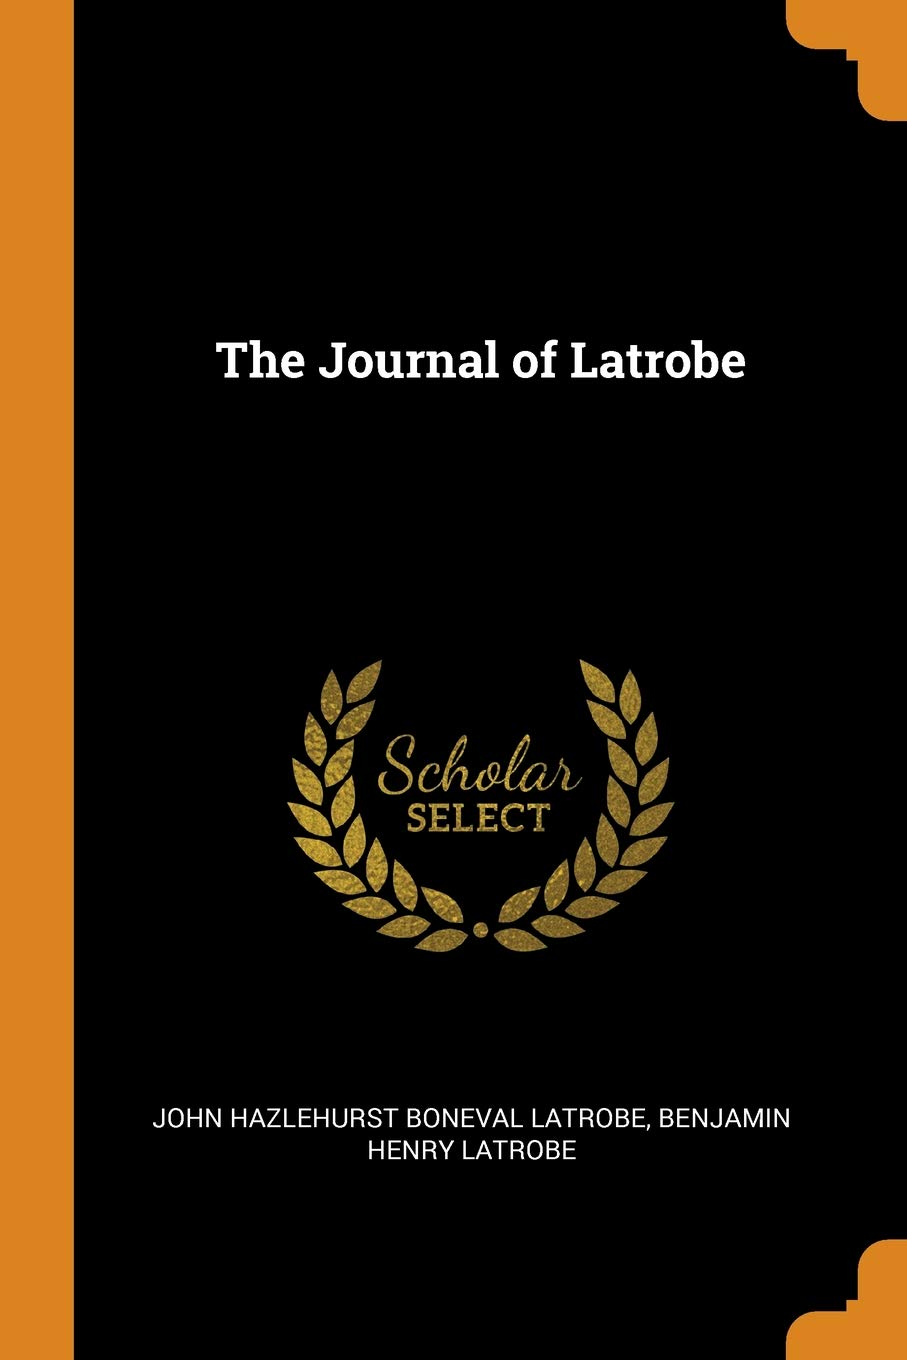 You know the exact title of the journal you need